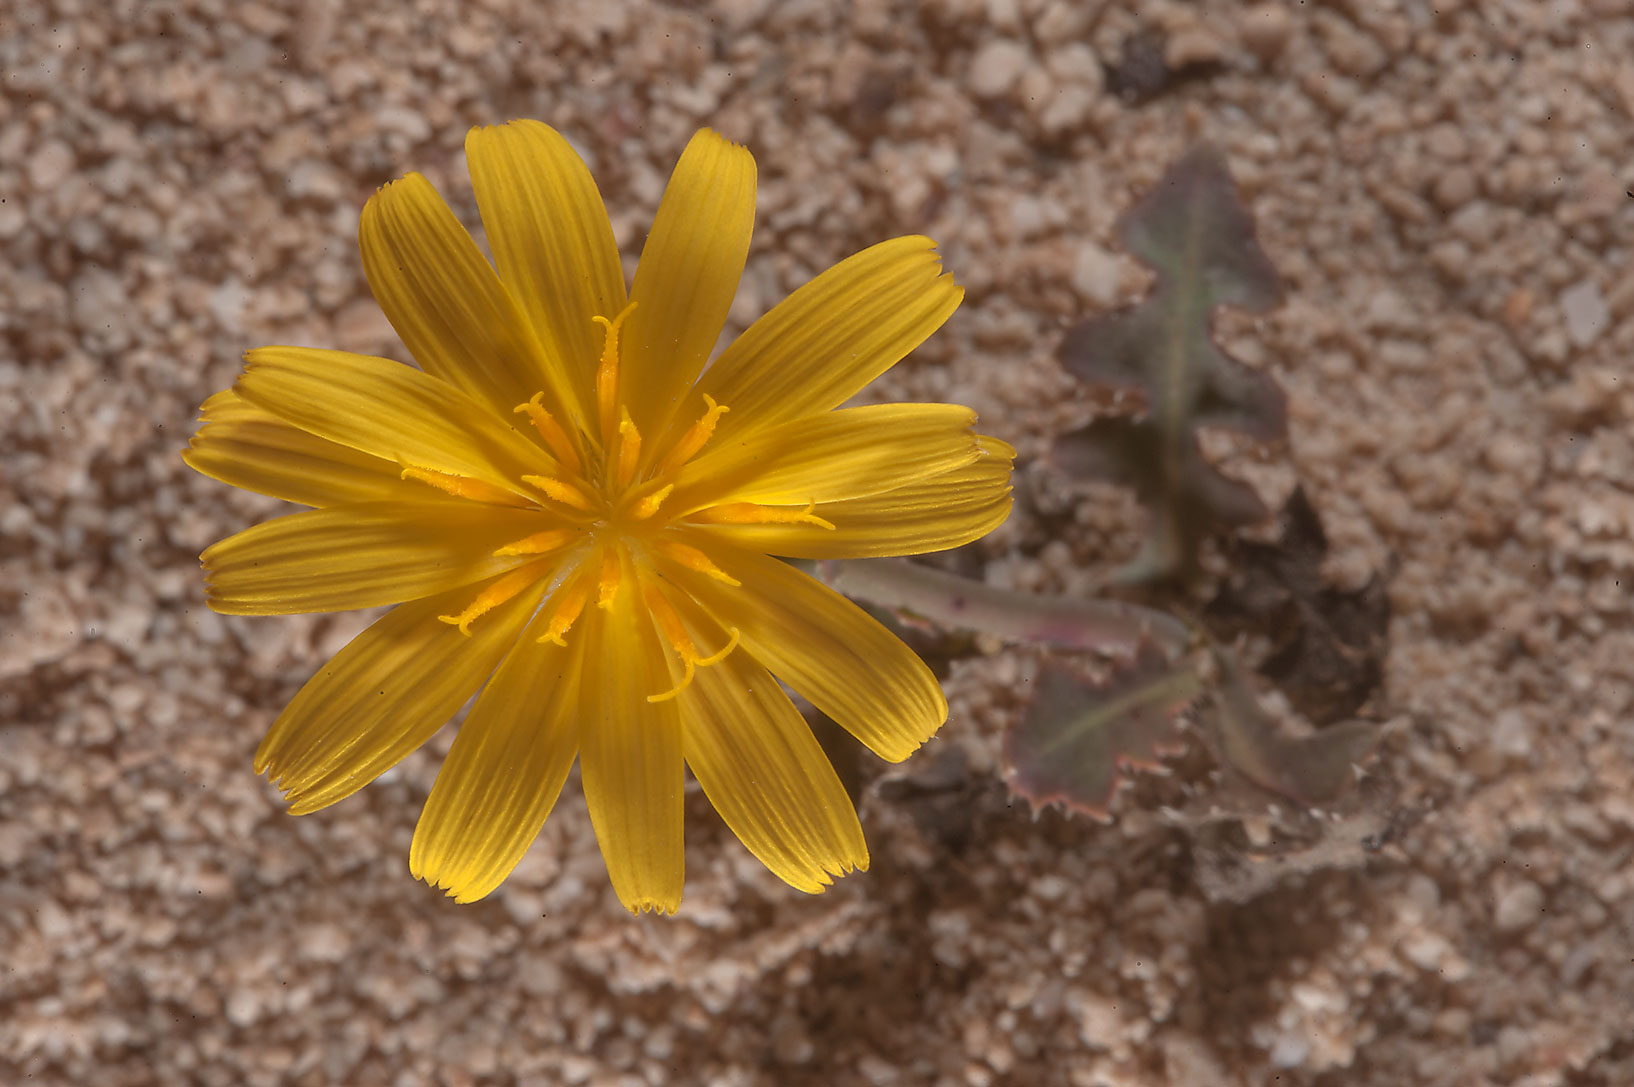 Dandelion like flower of Launaea mucronata (local...of Jebel Fuwairit. Northern Qatar